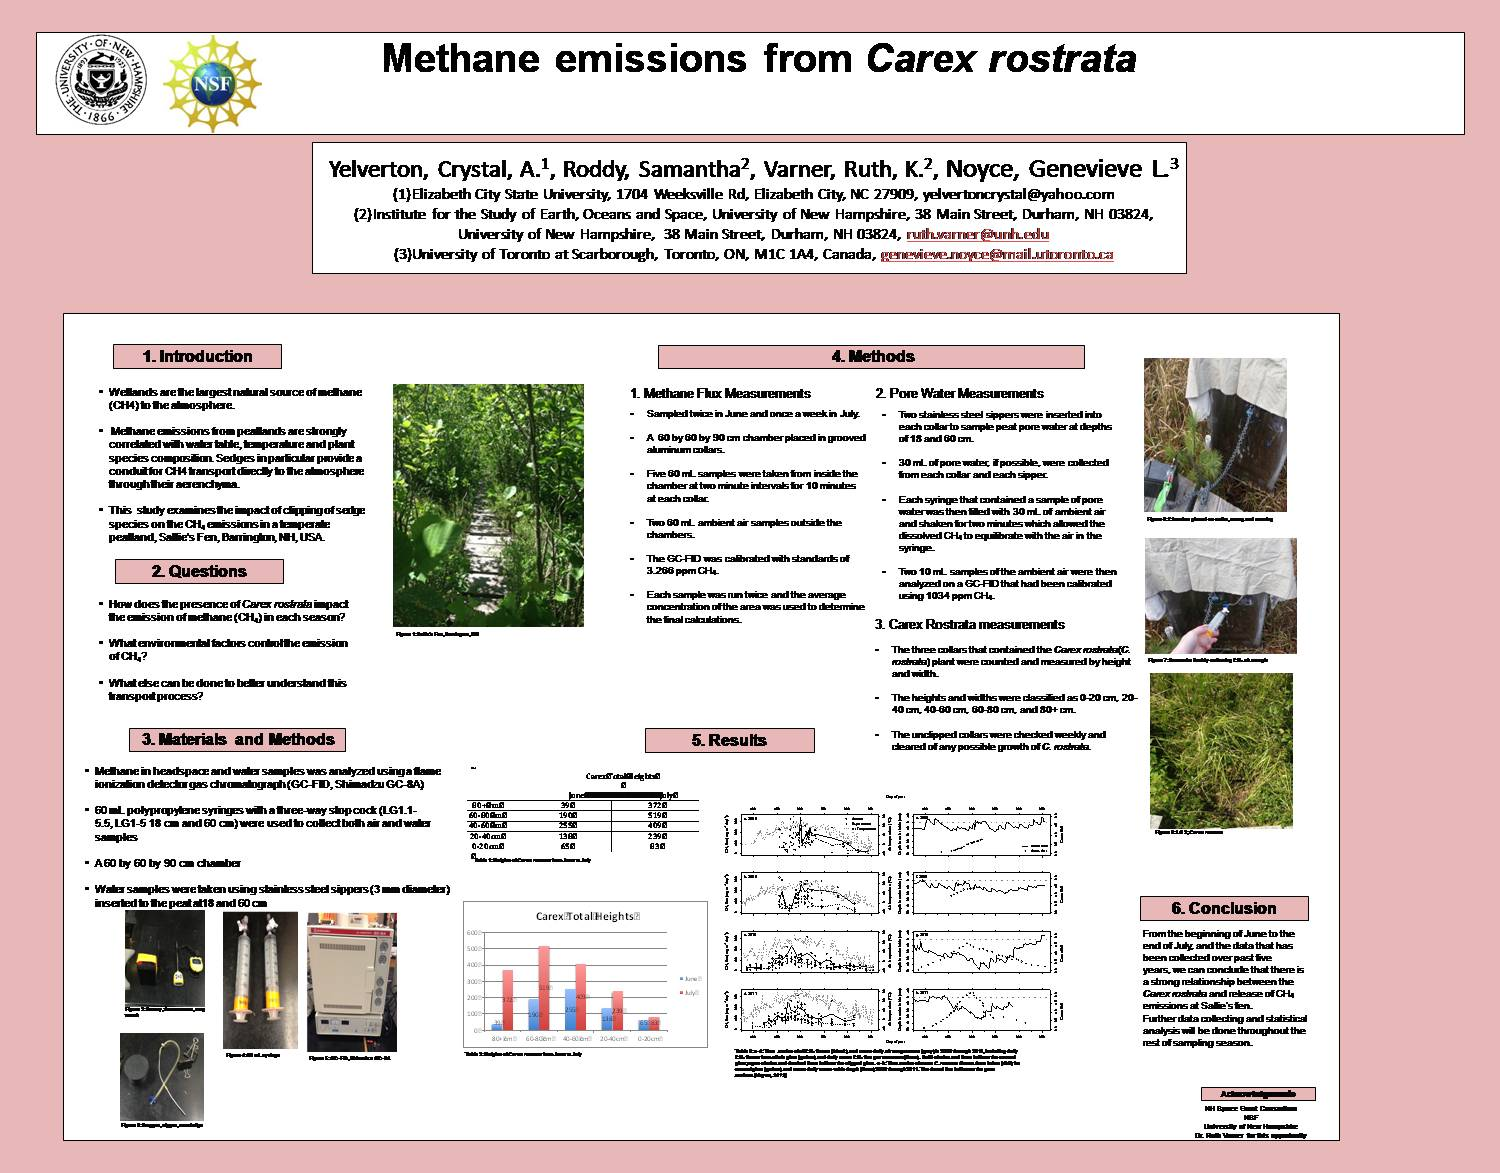 Methane Emissions From Carex Rostrata by Yelverton_C